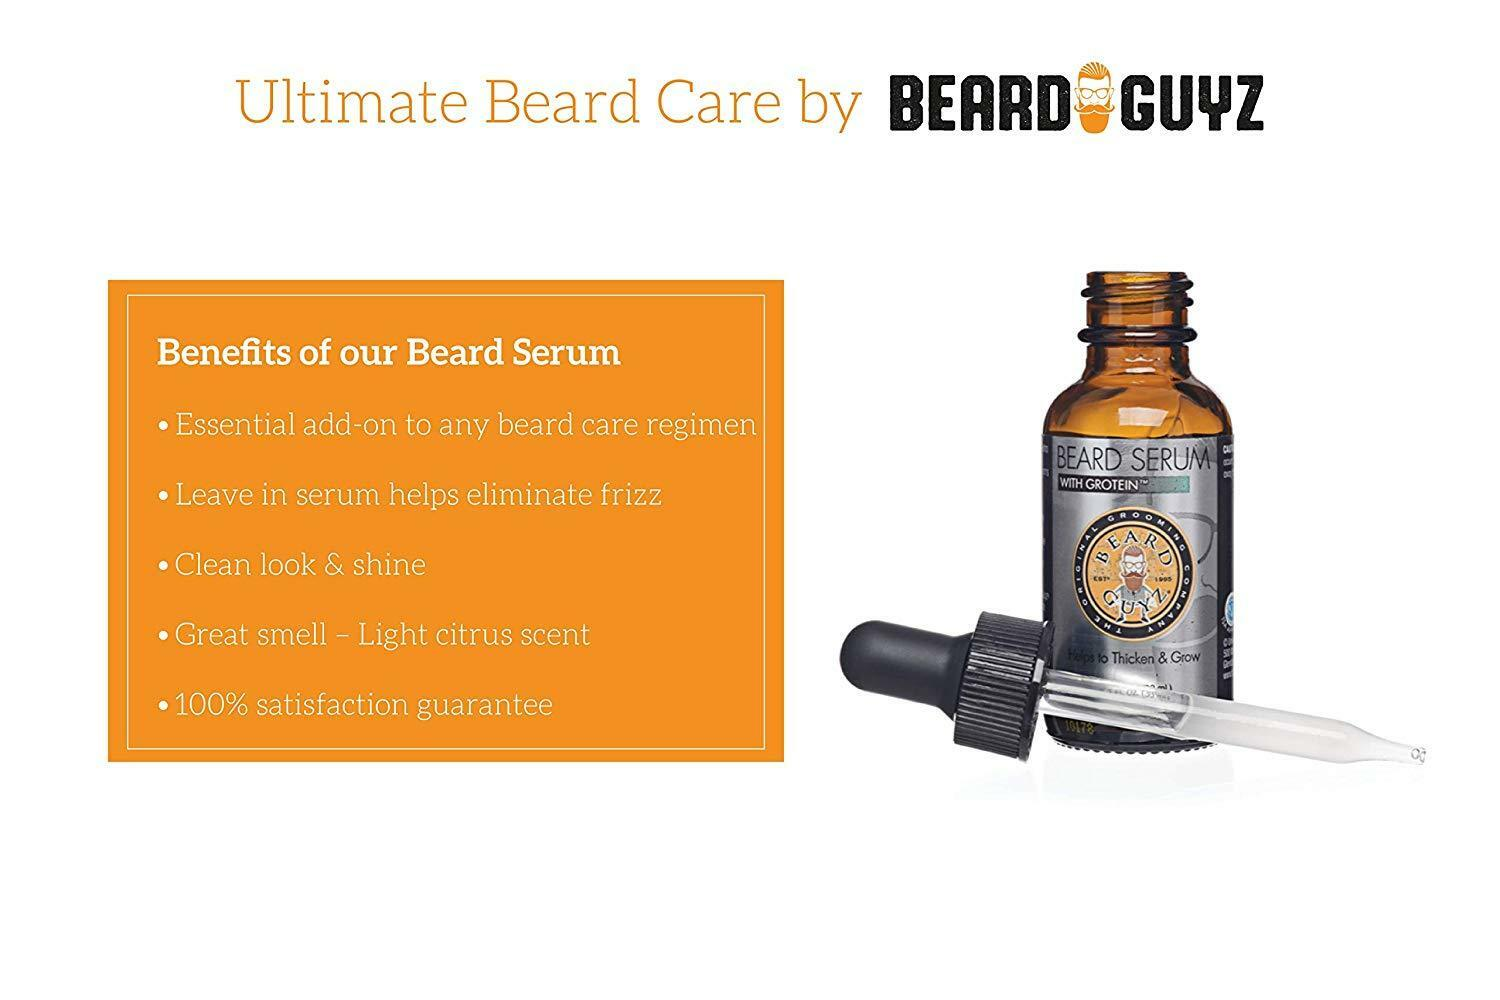 Beard Guyz Beard Serum with Grotein